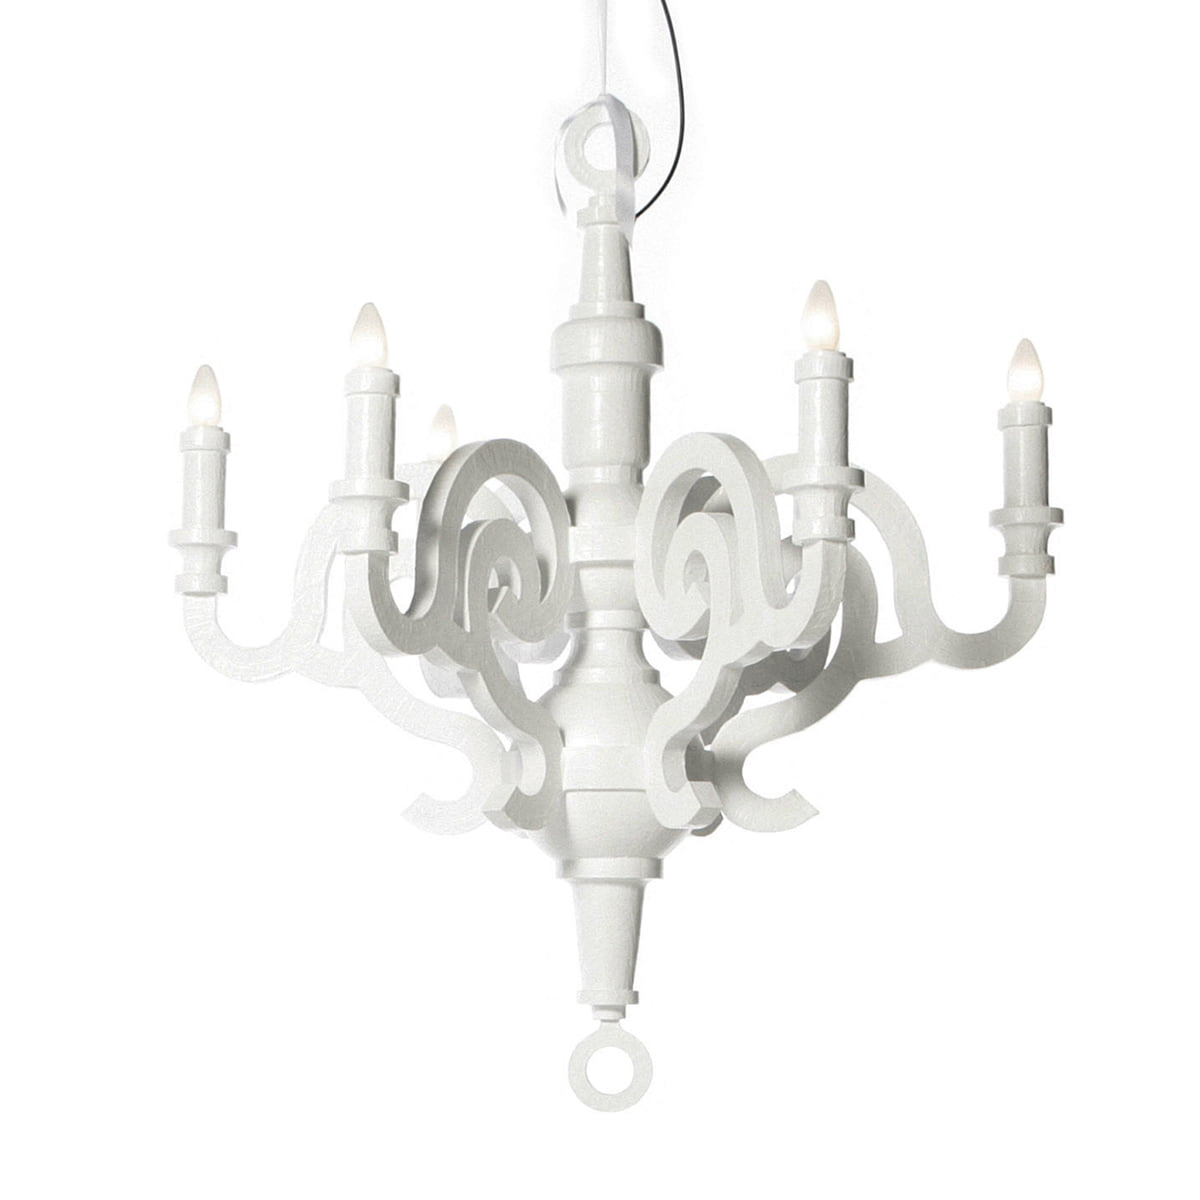 Buy the Paper Chandelier by Moooi online – Moooi Paper Chandelier